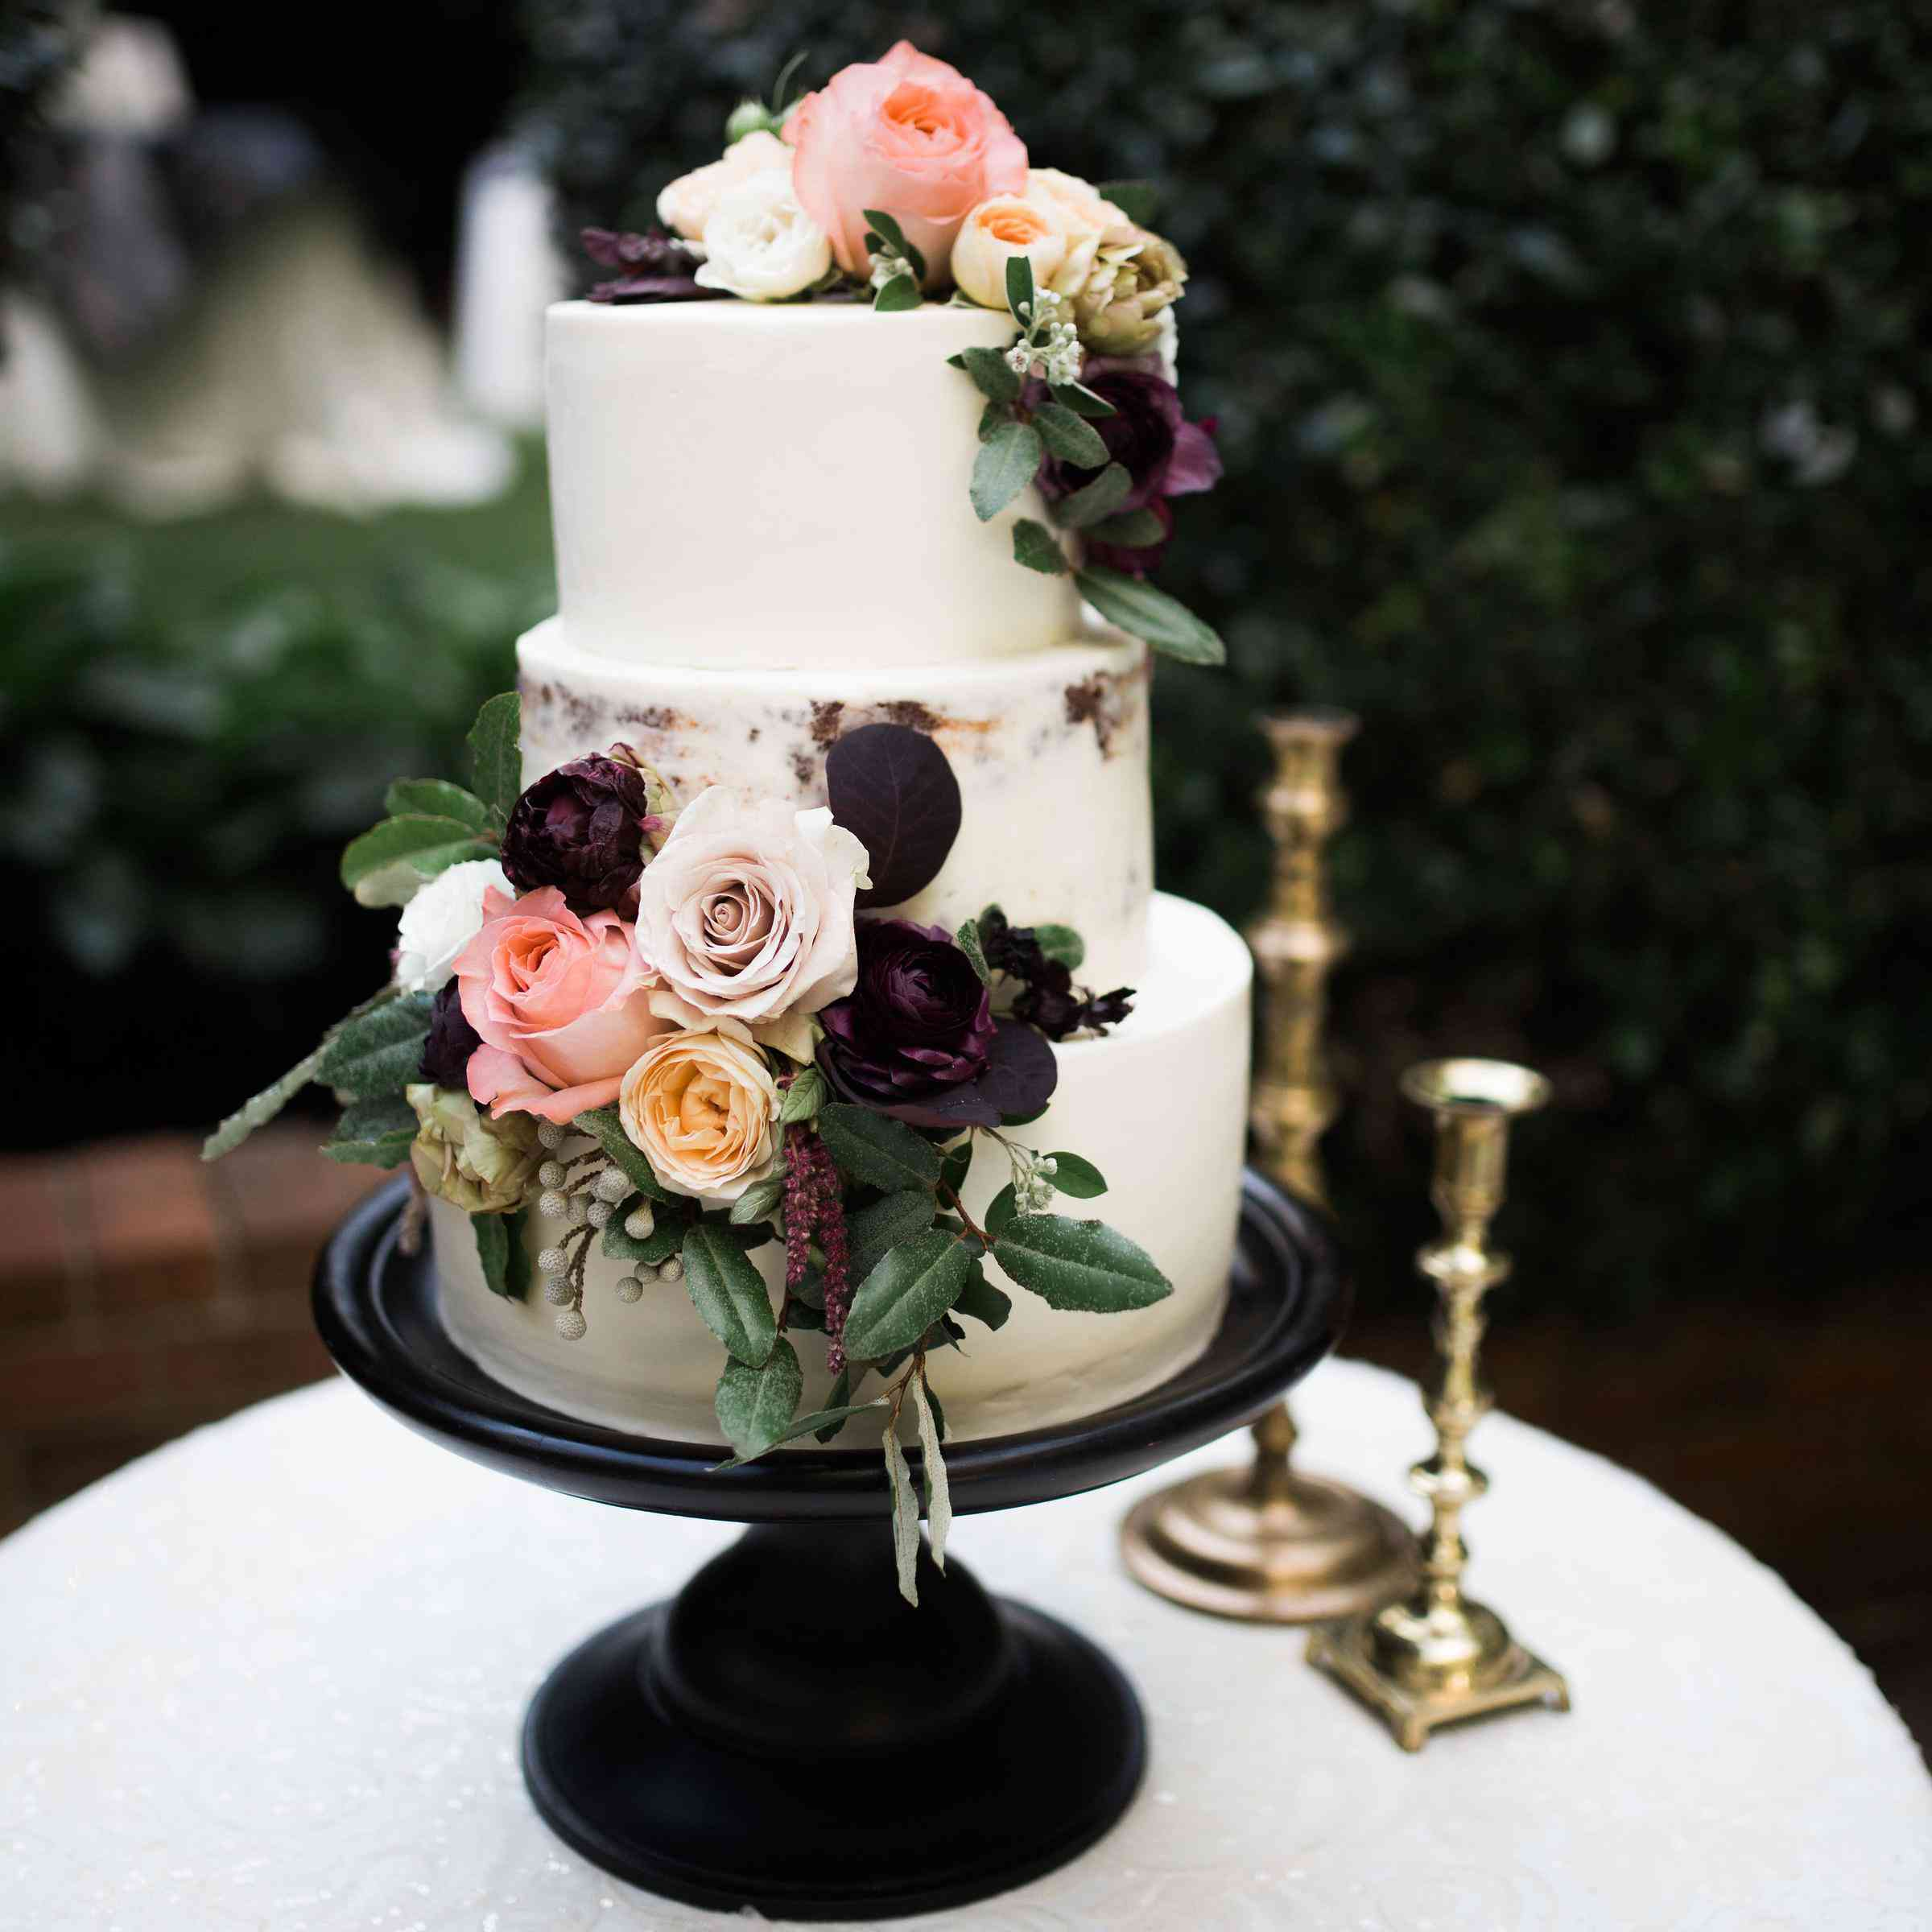 35 Attractive Wedding Cakes Pictures For Your Big Day: 85 Of The Prettiest Floral Wedding Cakes